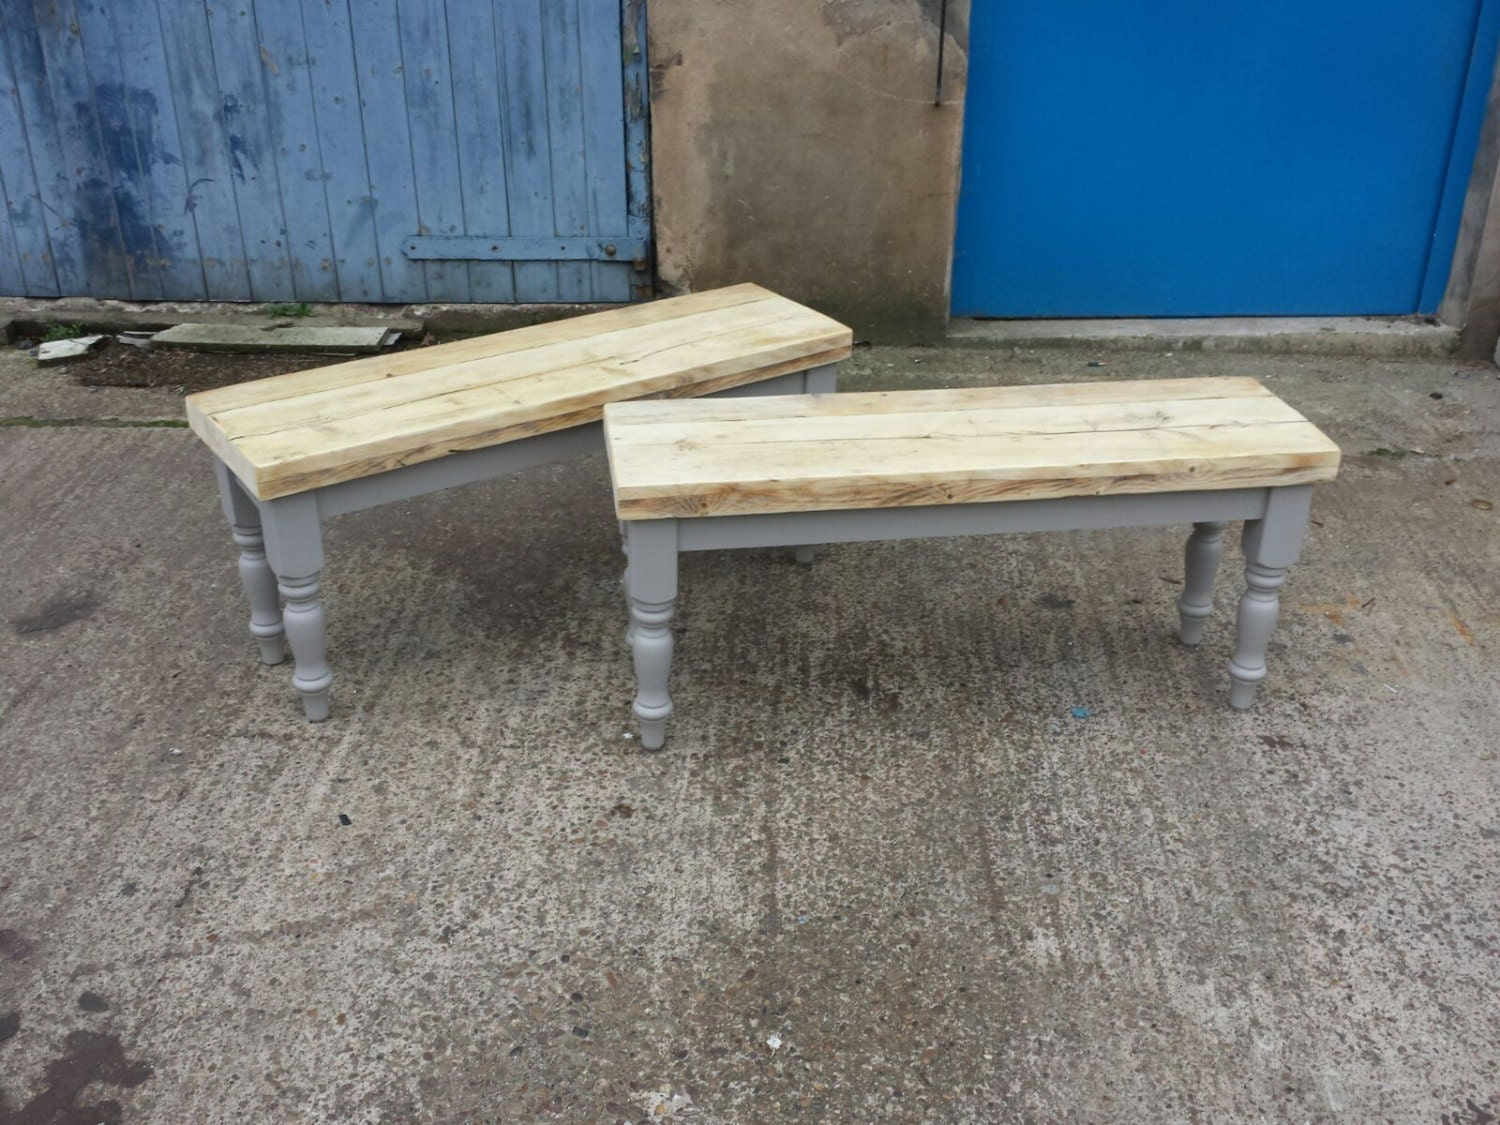 Shabby Chic Farmhouse Reclaimed Wood Dining Table Bench. Made